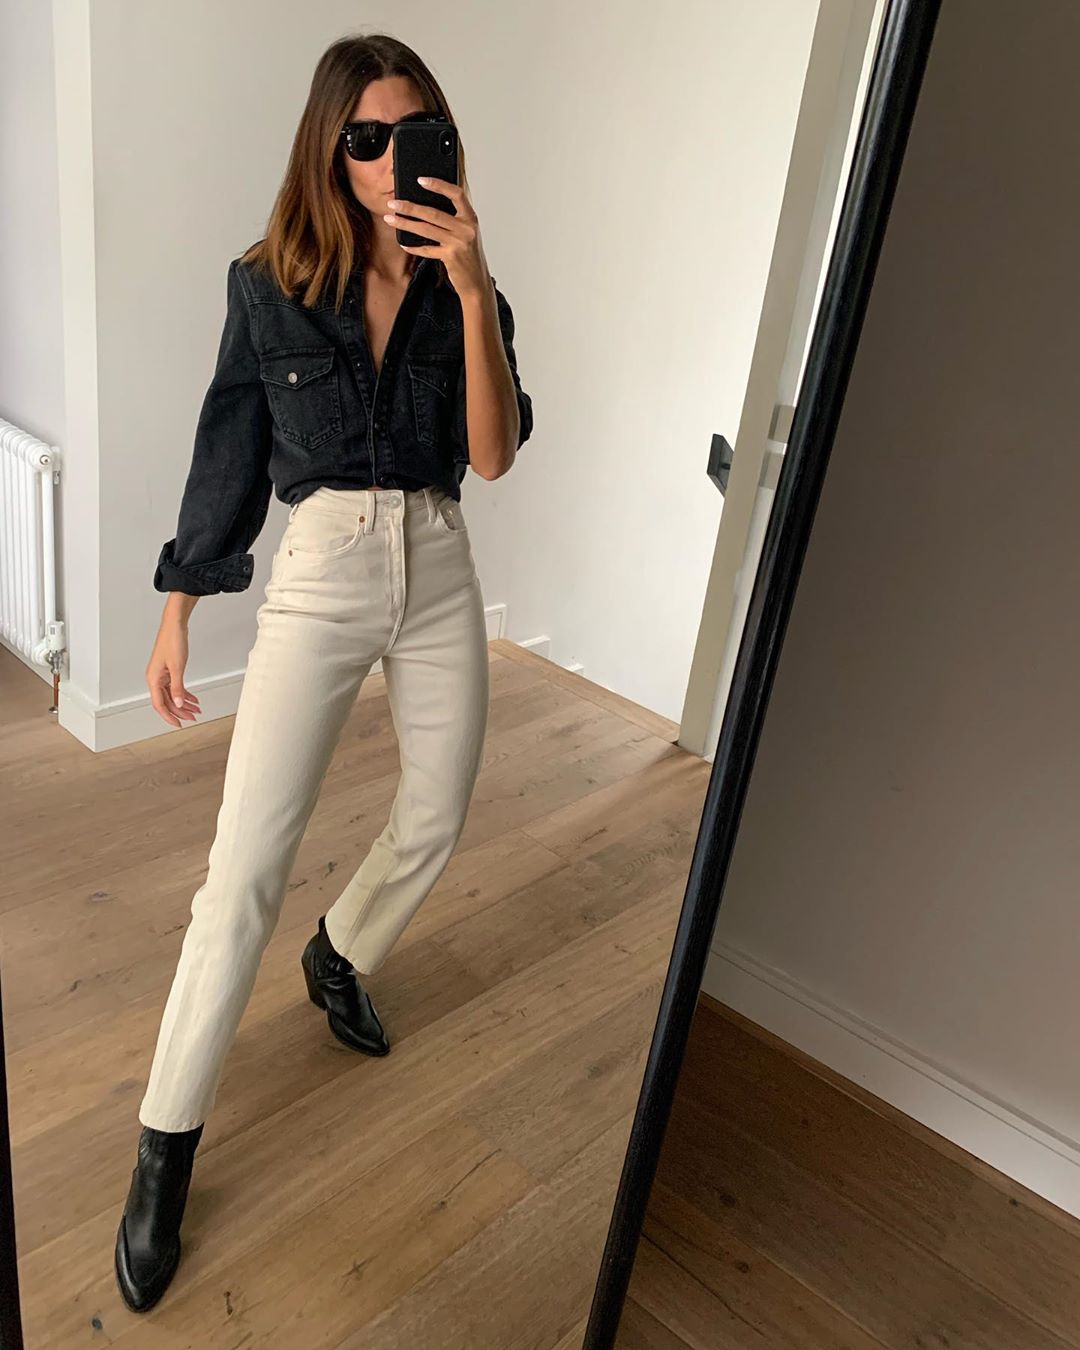 We're Obsessed With Beige Jeans Thanks to This Instagram Look